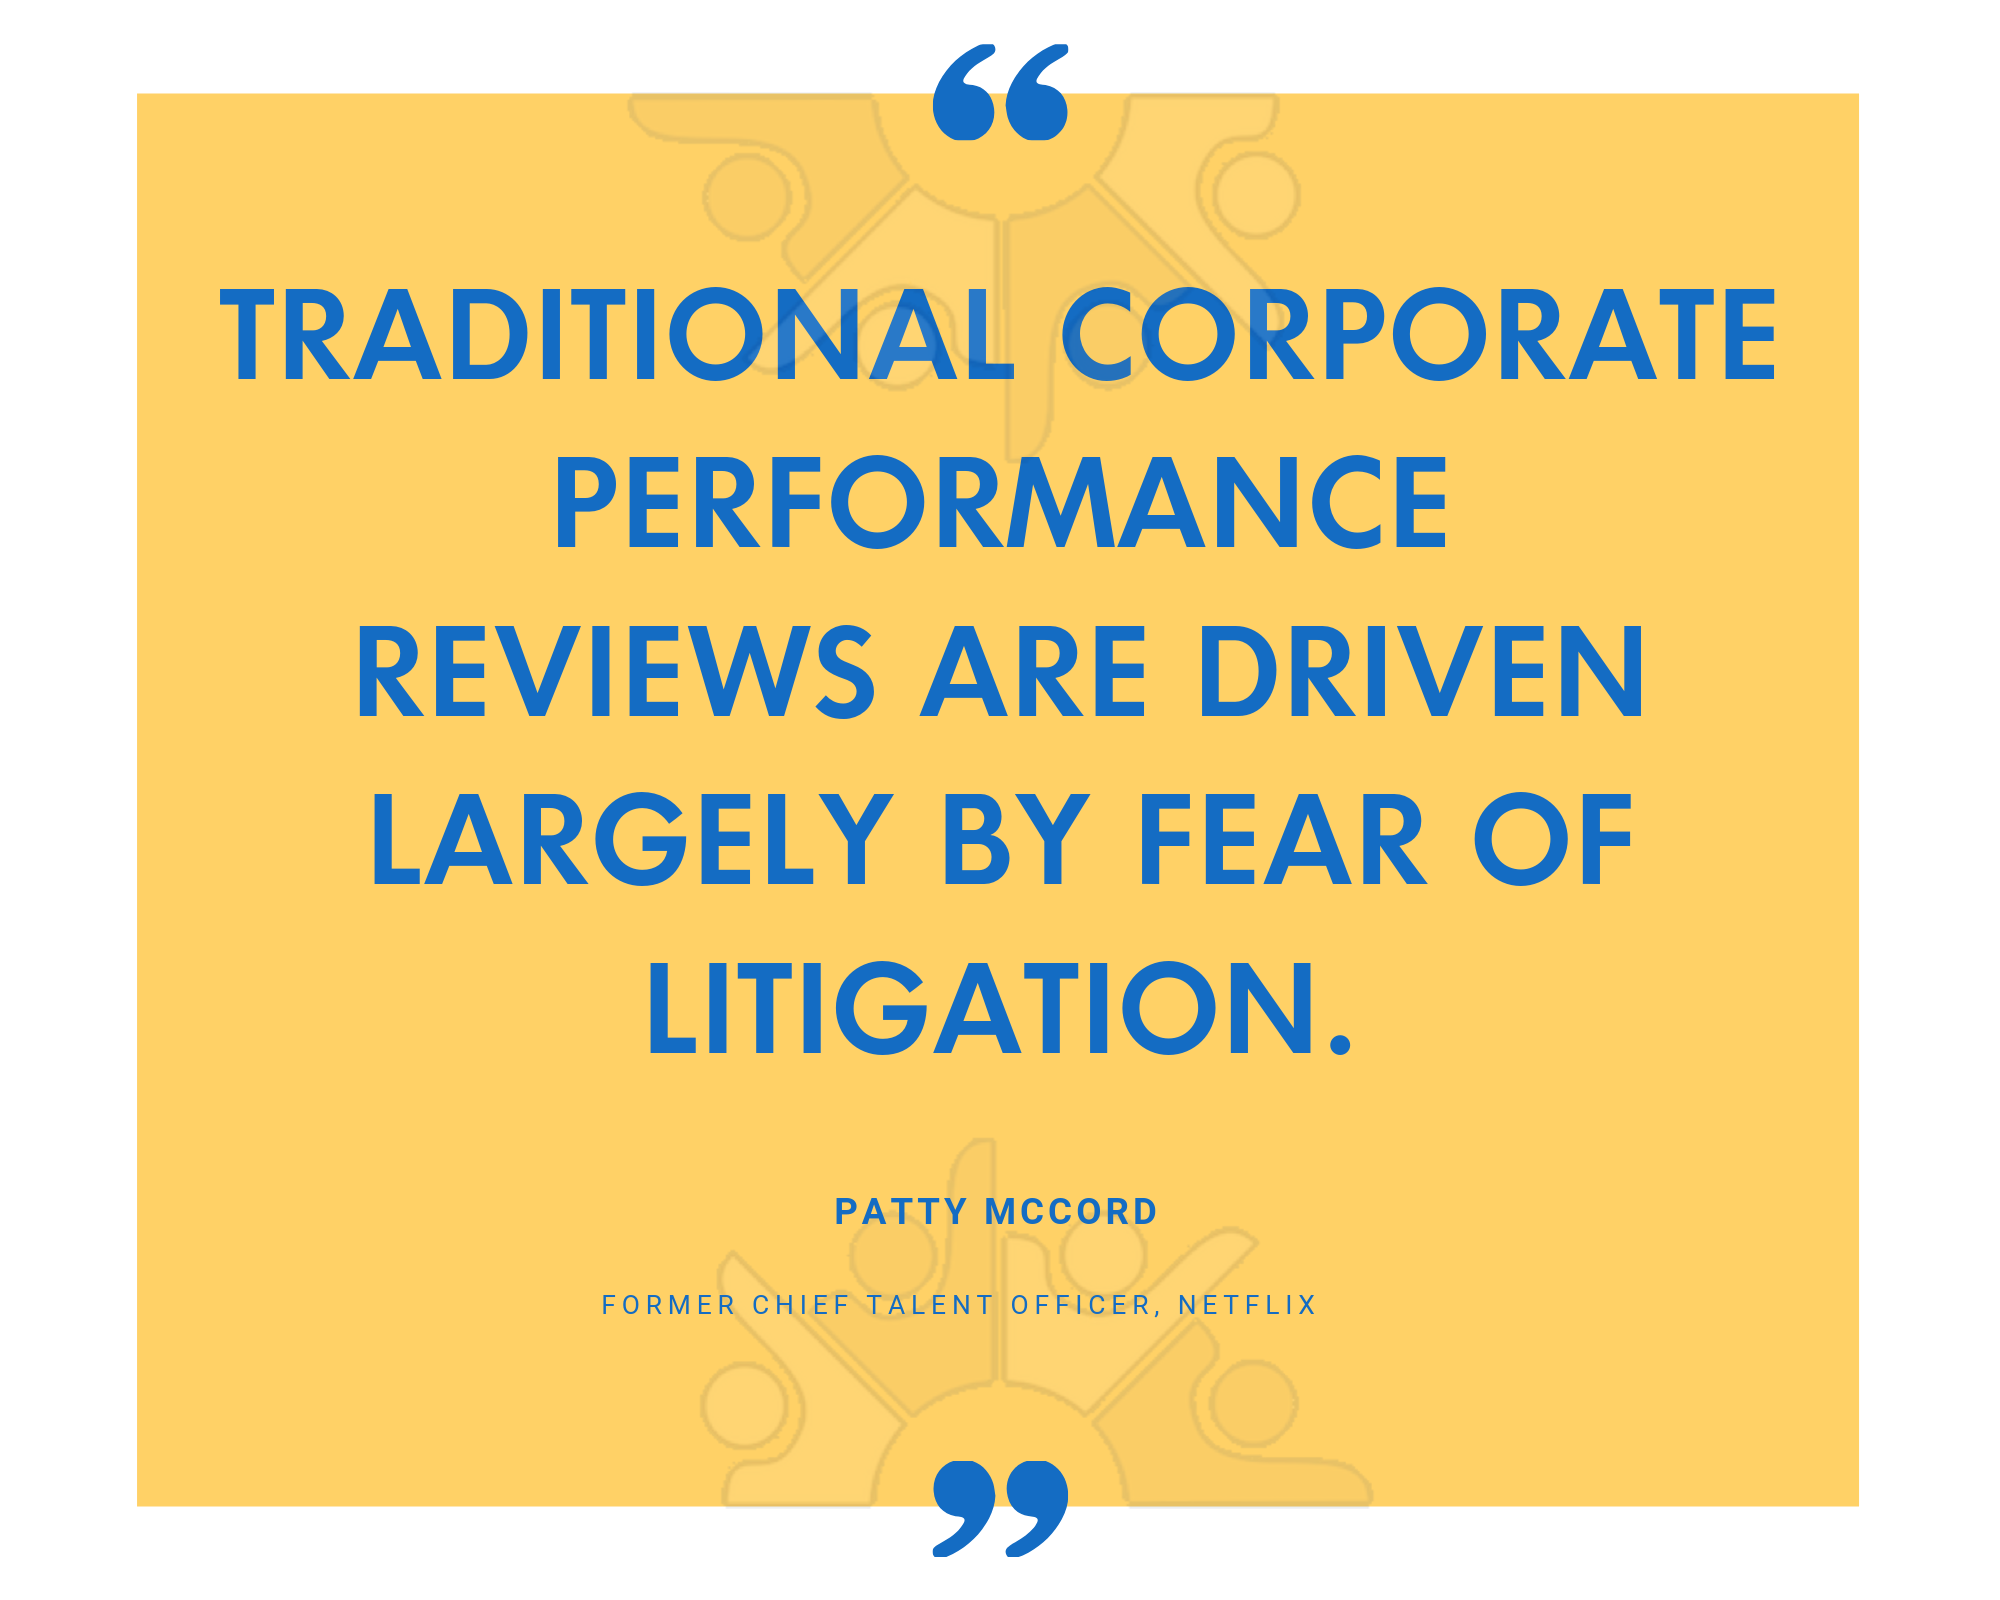 Traditional corporate performance reviews are driven largely by fear of litigation